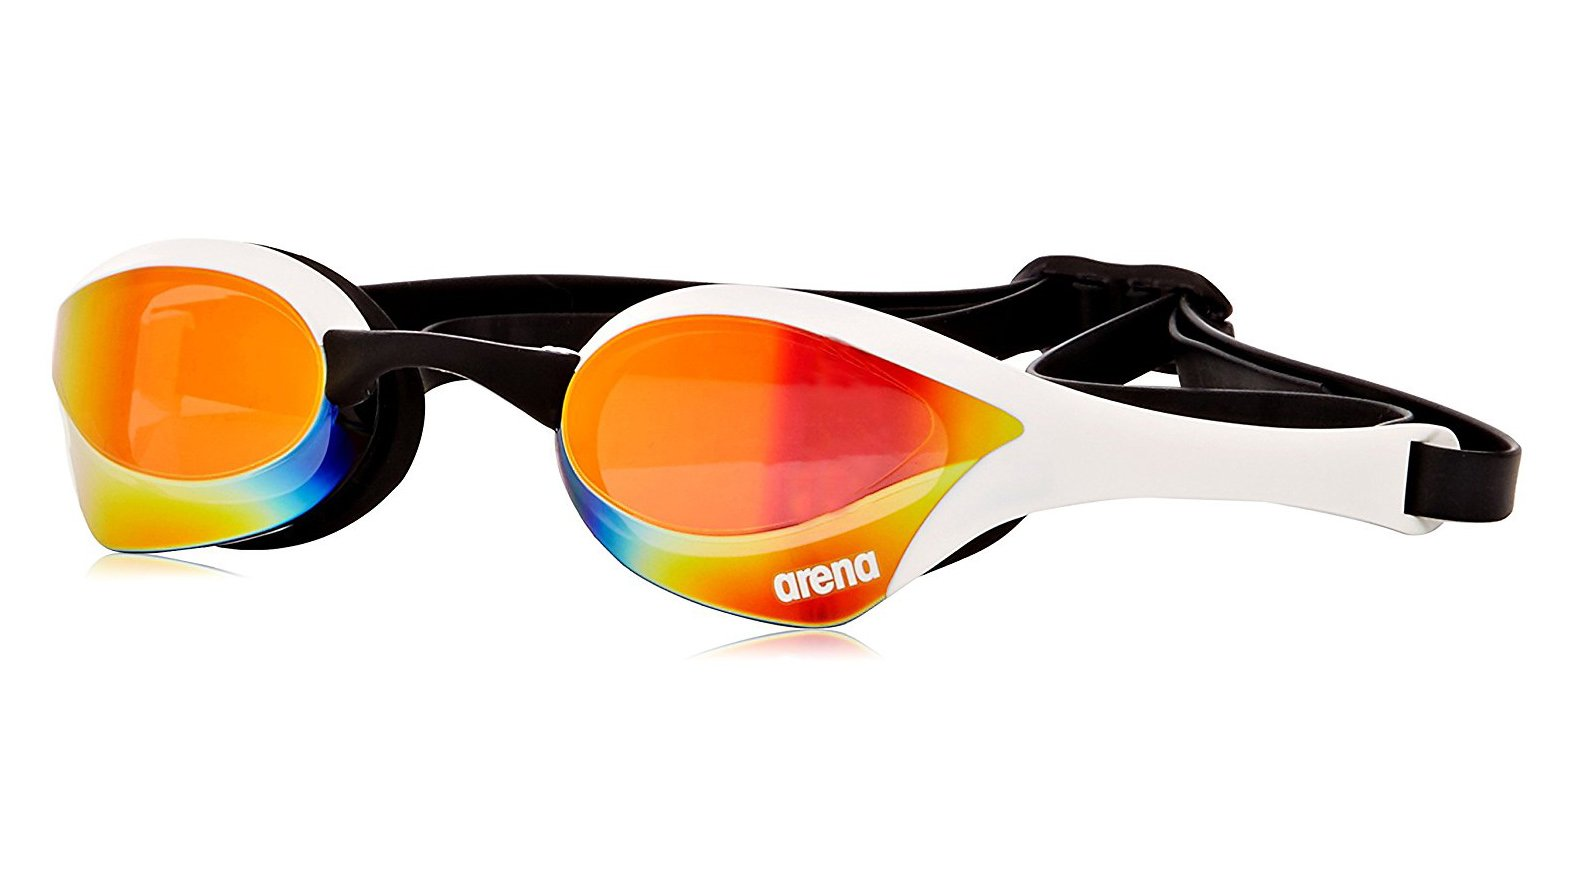 a46d1edfdc74 It s not just the ultra-cool tinted lenses that make these goggles stand  out. They also come with an interchangeable nose bridge with five different  levels ...